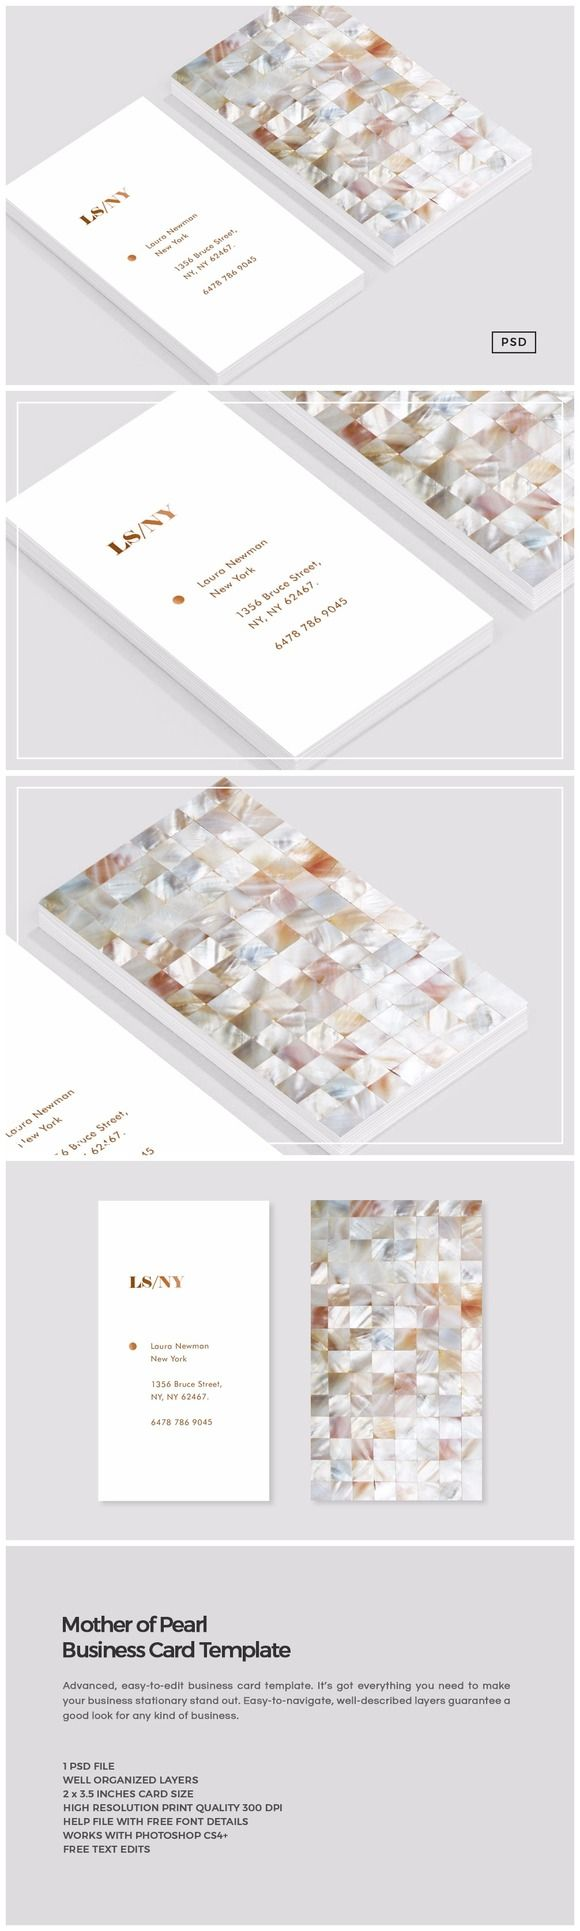 Mother of Pearl Business Card by The Design Label on @creativemarket